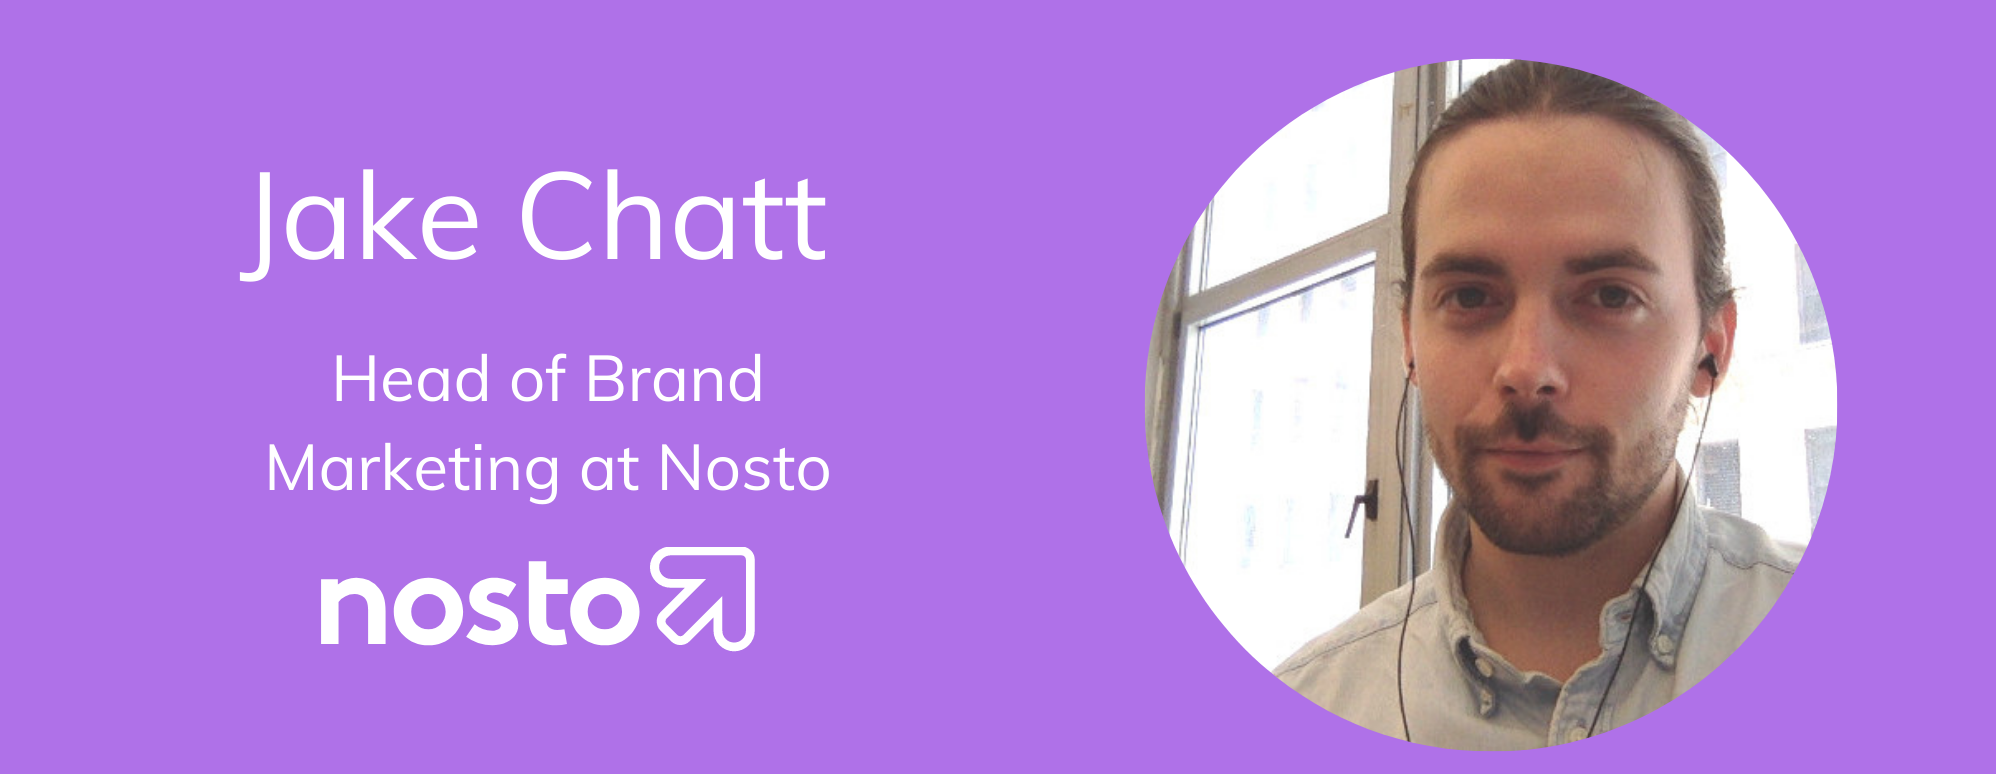 Jake Chatt Head Of Brand Marketing At Nosto